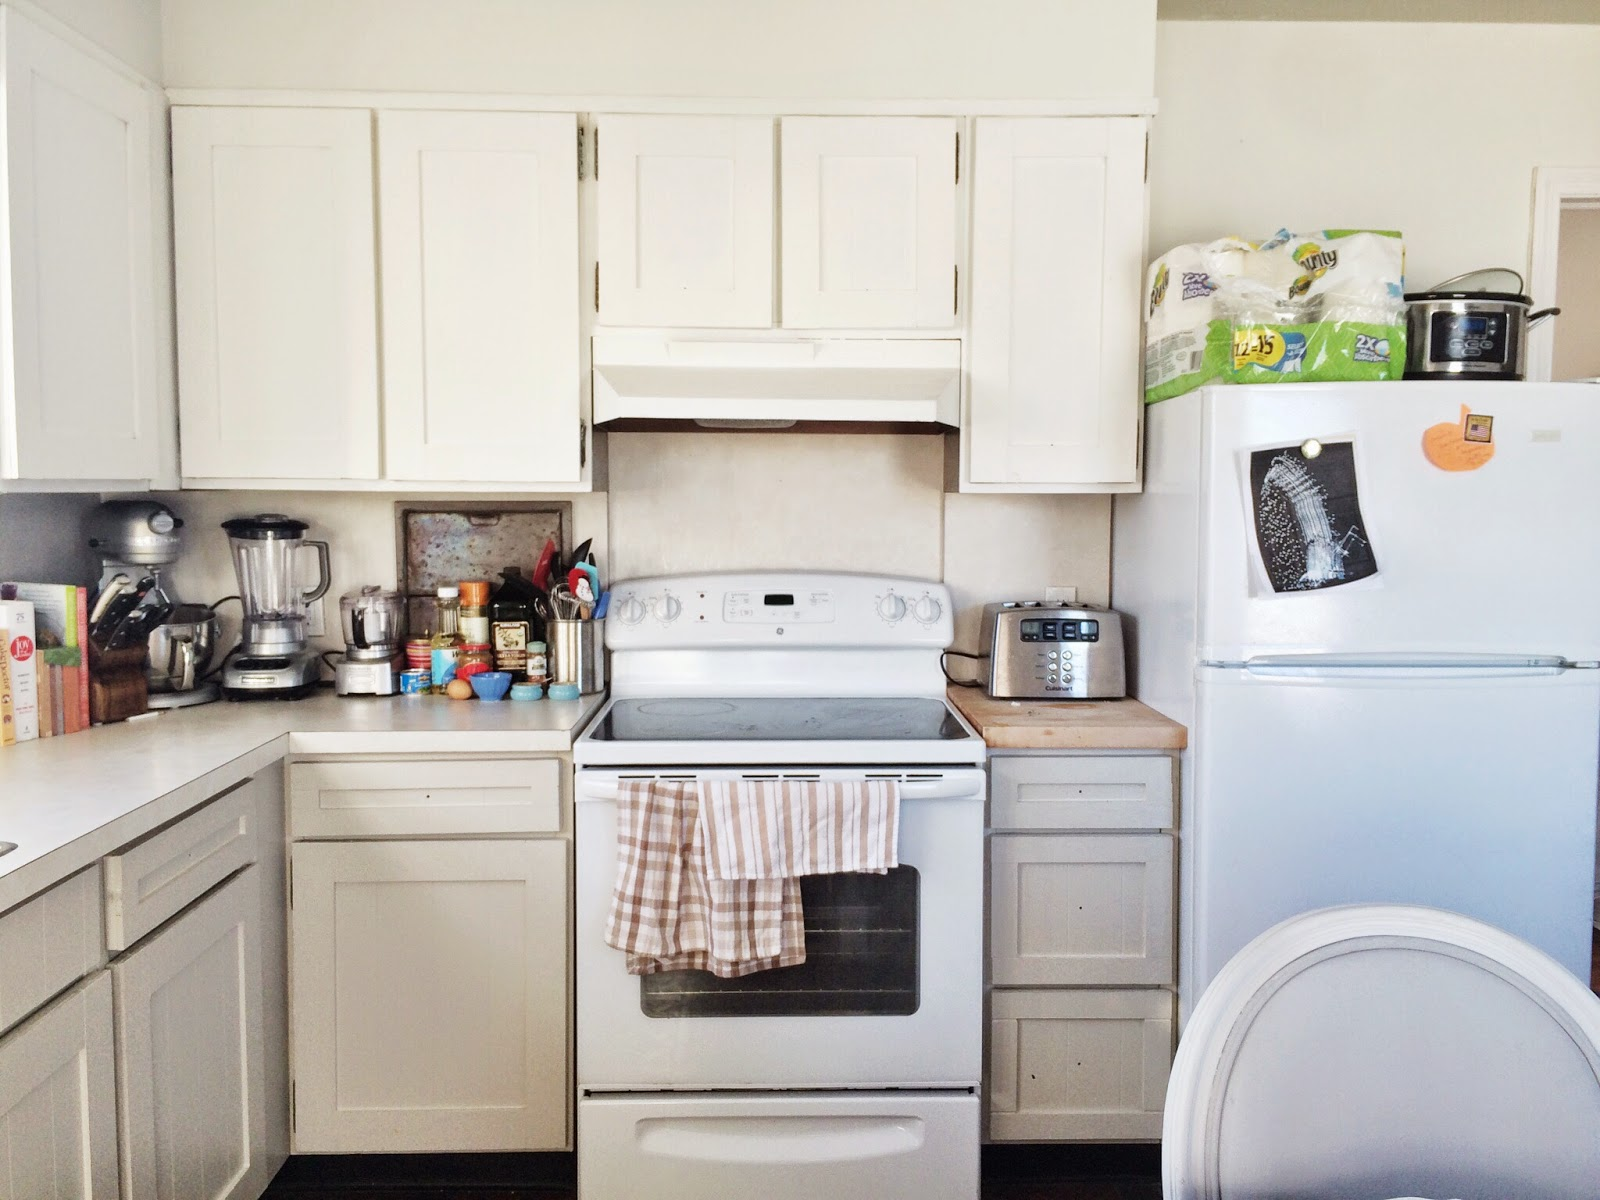 How to: Paint & Add Shaker Trim to Kitchen Cabinets